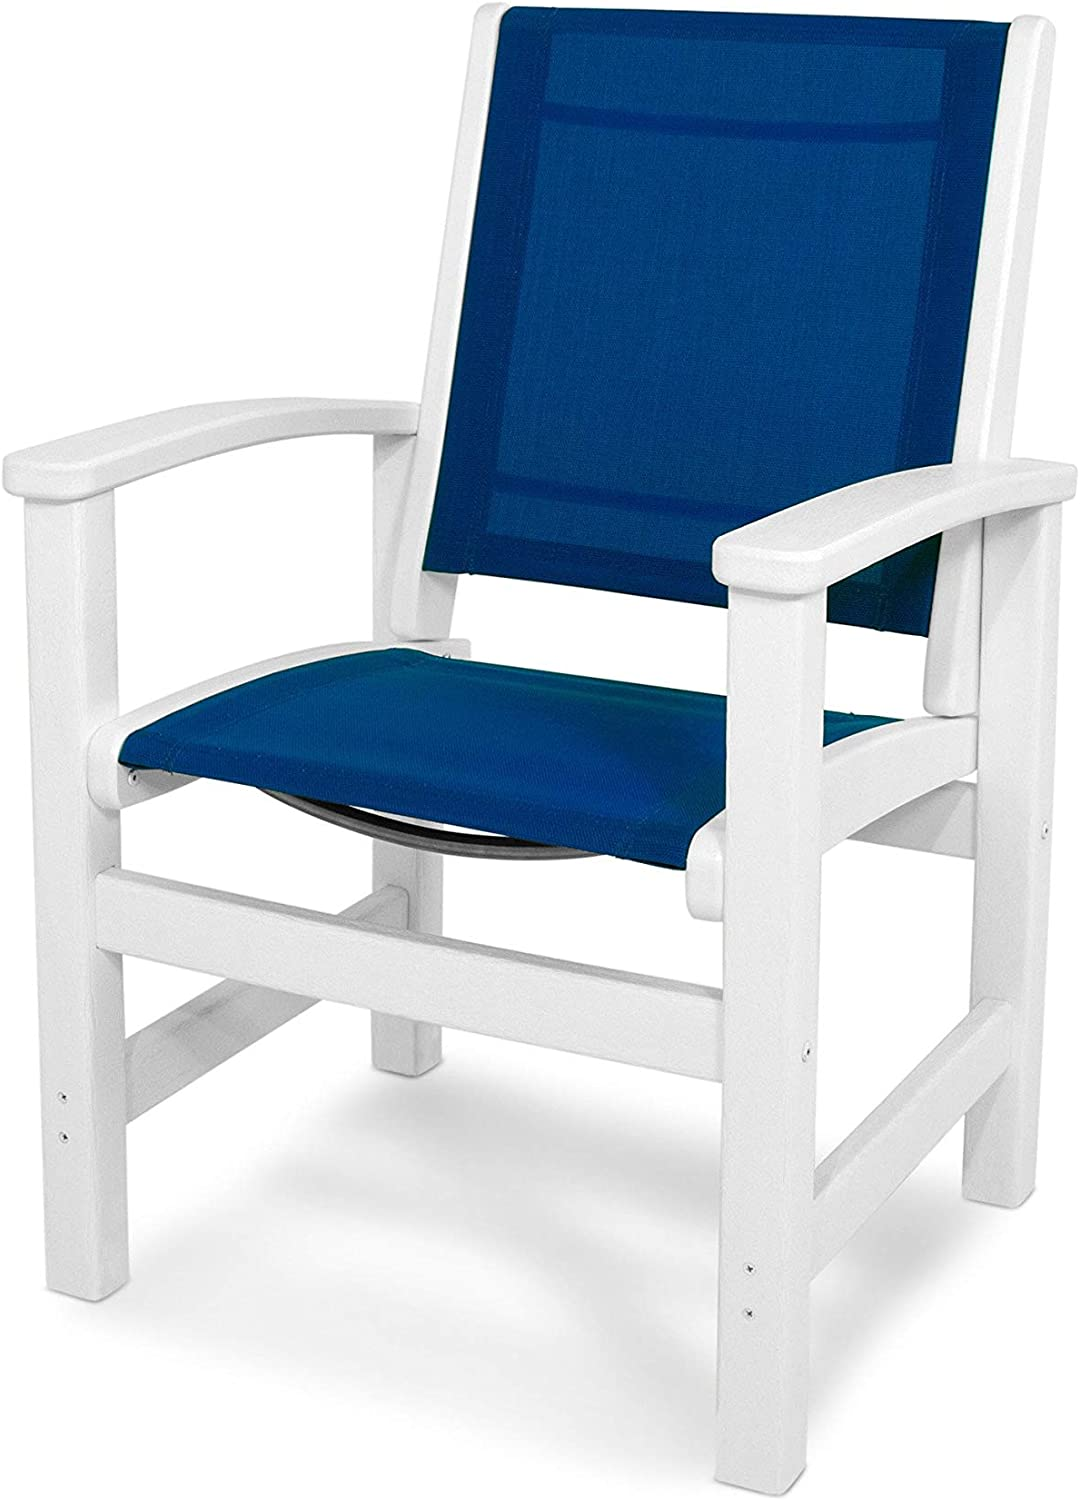 POLYWOOD 9010-WH905 Coastal White and Royal Blue Sling Dining Chair